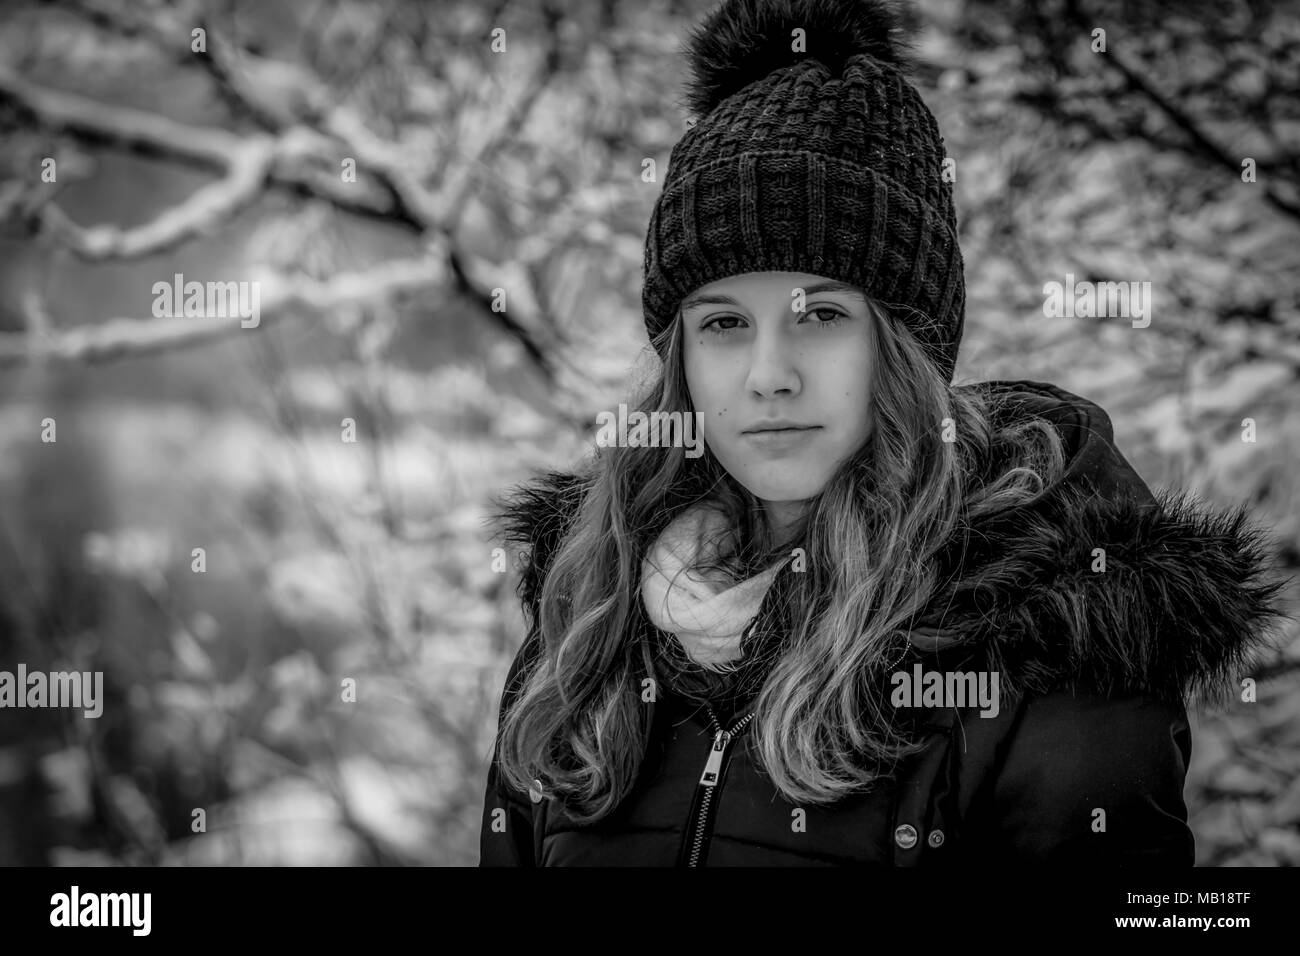 Closeup portrait of pretty teen girl at winter black and white beautiful caucasian teenage girl in black coat blurred snowy forest in background